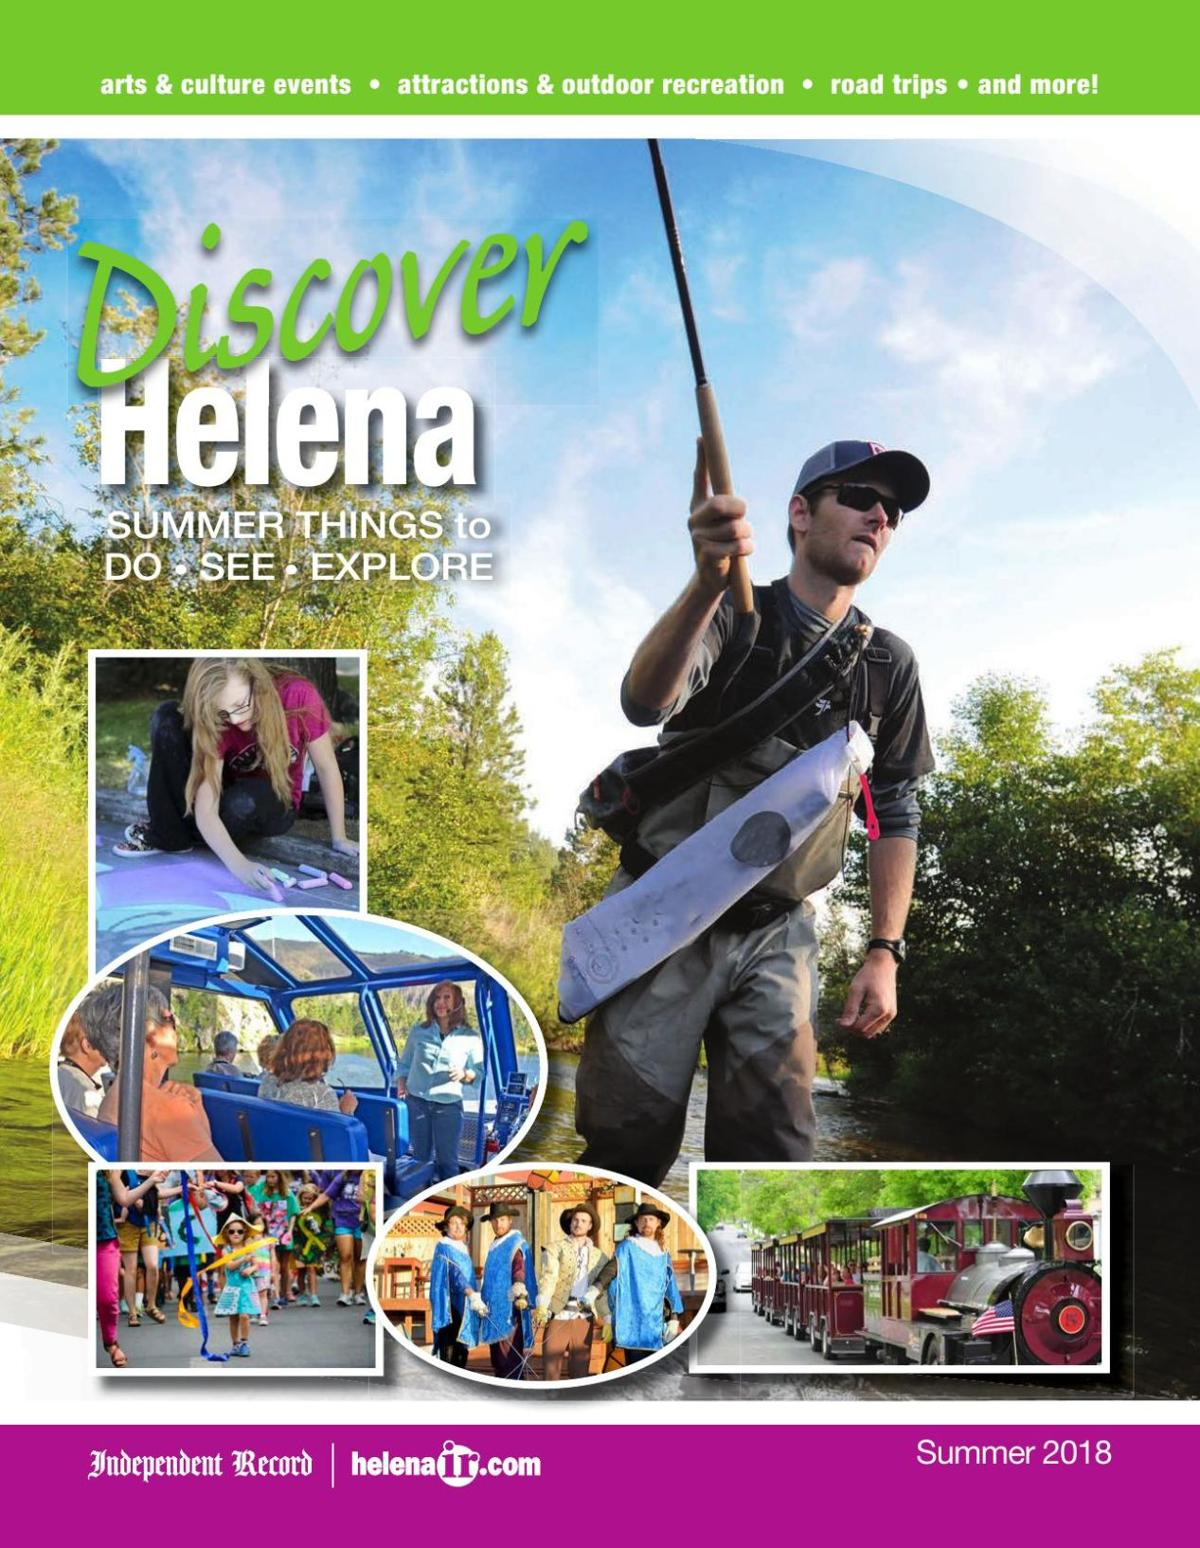 Discover Helena - Summer Things to Do, See & Explore - Summer 2018